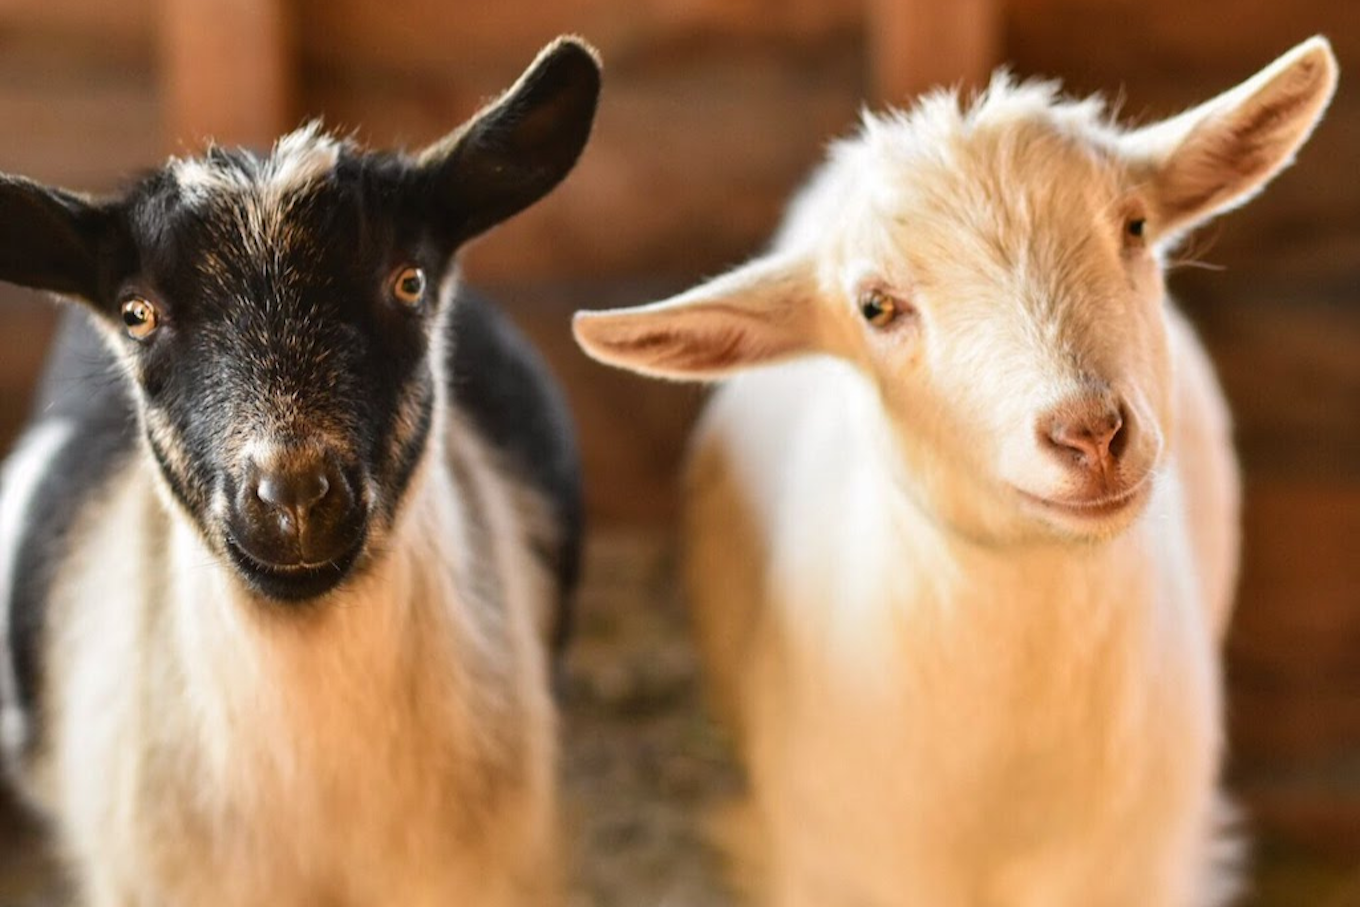 A photo of two baby goats filling the frame in the photo composition.